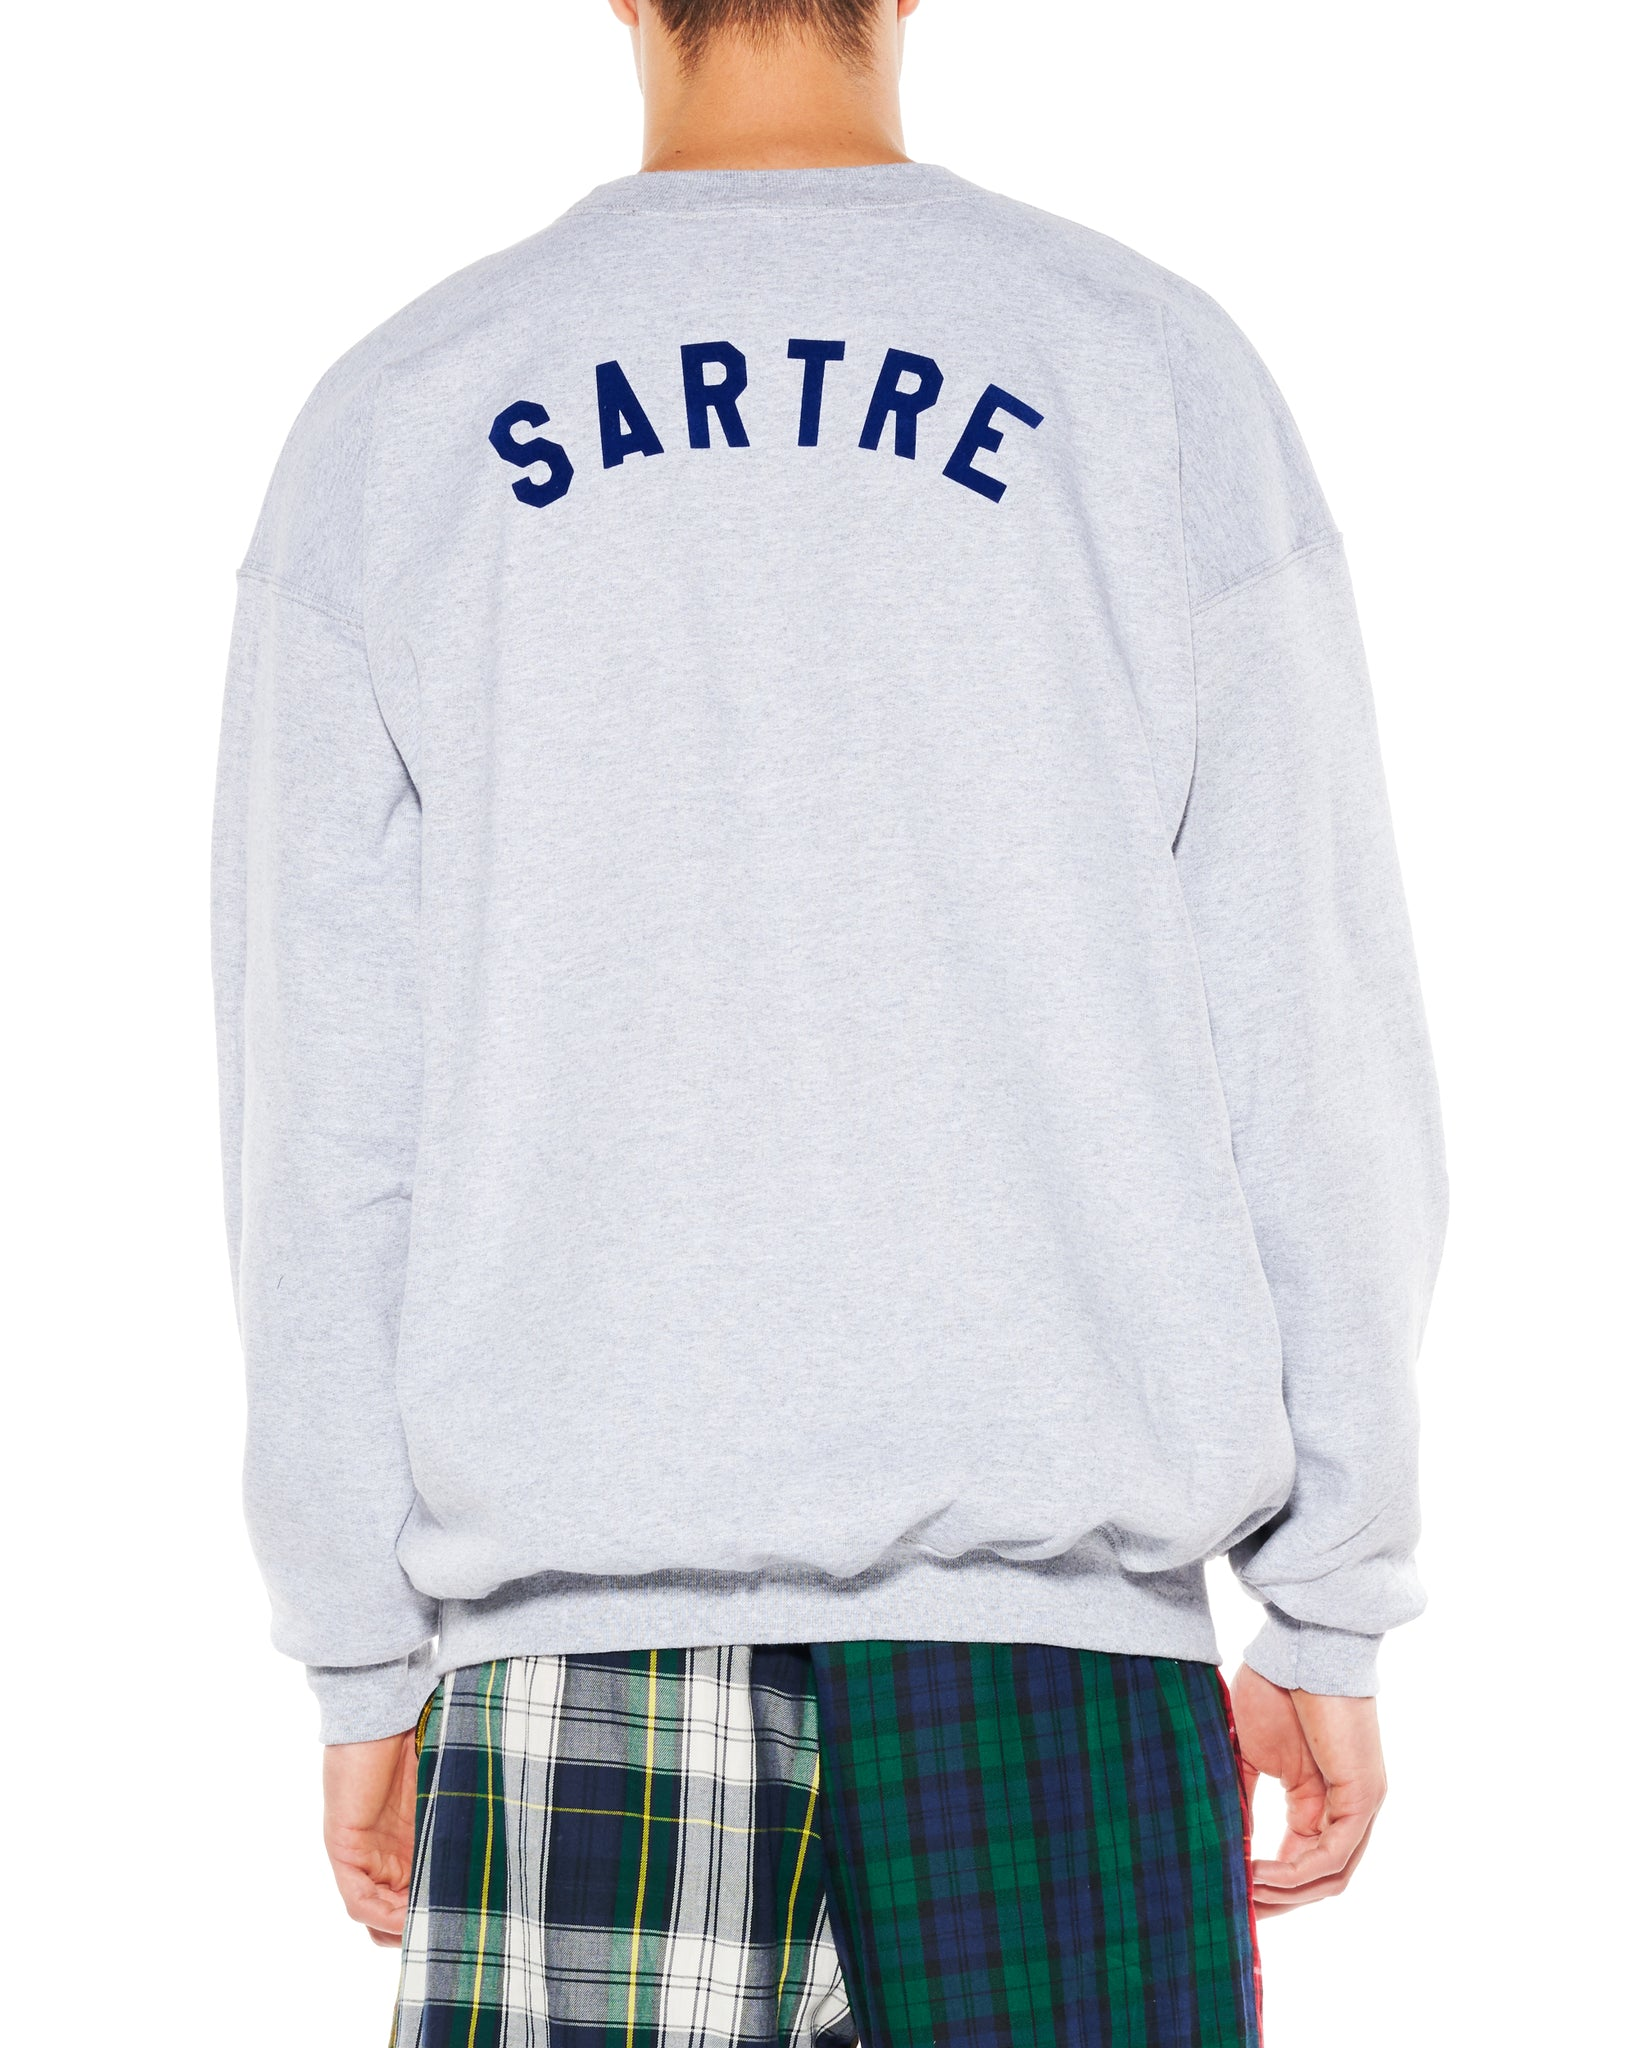 """SARTRE"" CREWNECK SWEATSHIRT - Men's Tops - Libertine"